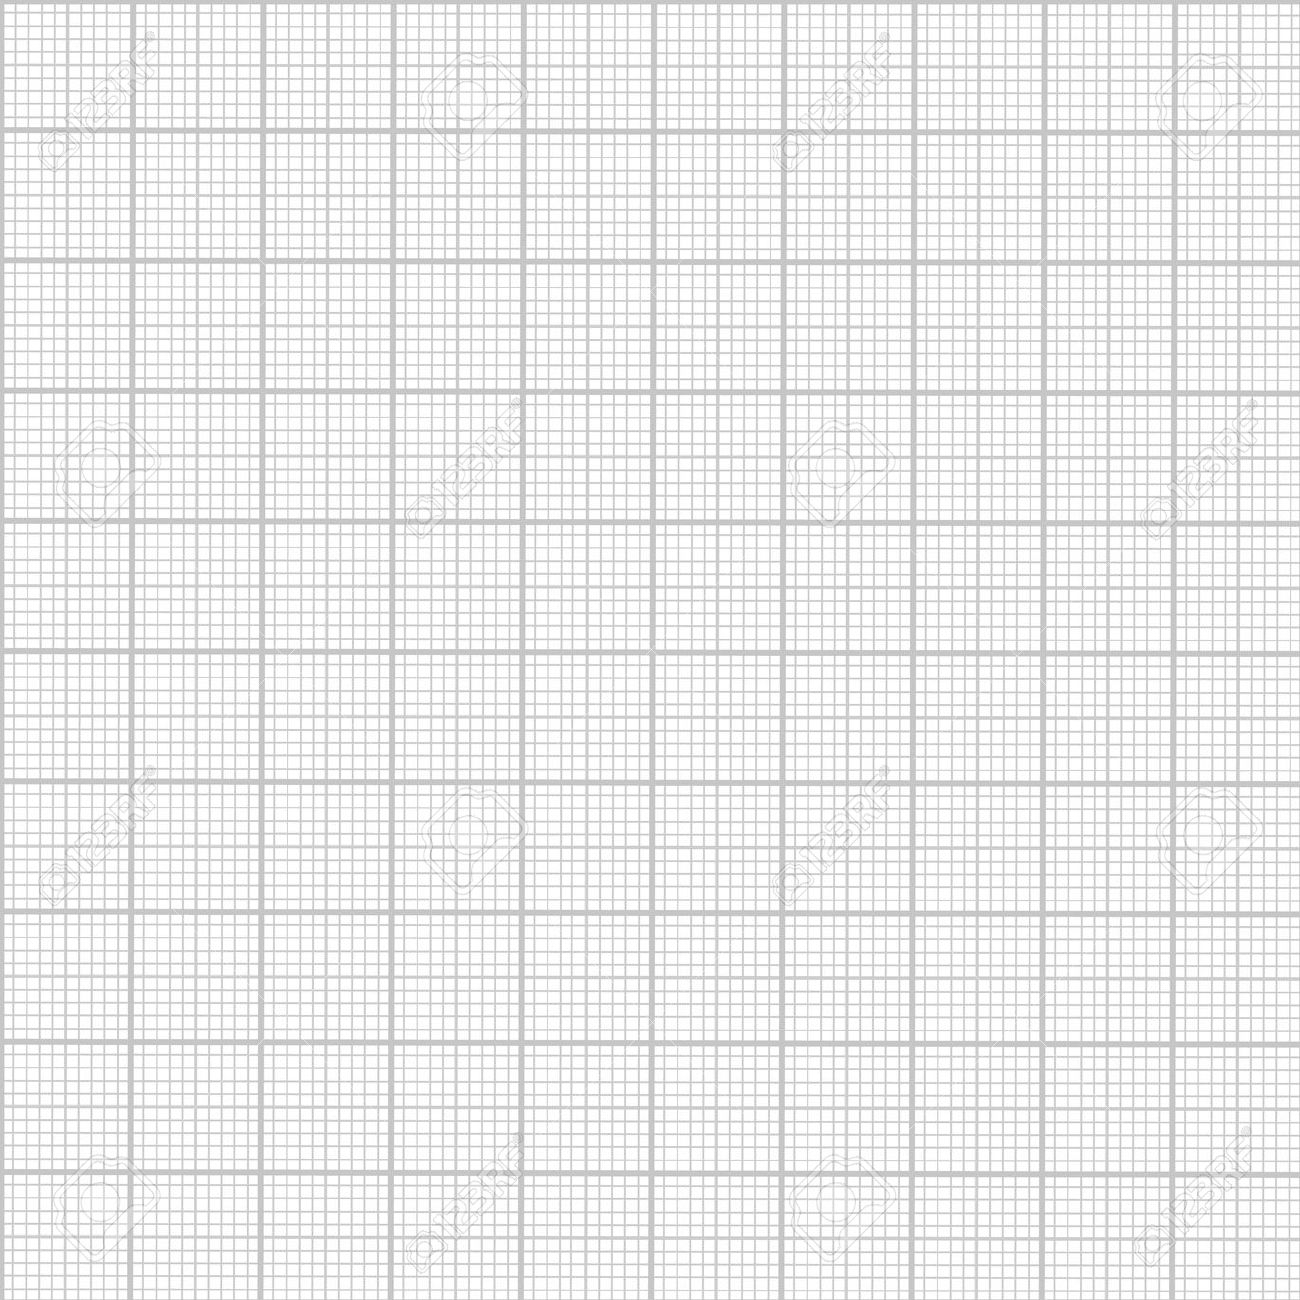 Graph paper printable 8 5x11 full sheet free – Regular Graph Paper